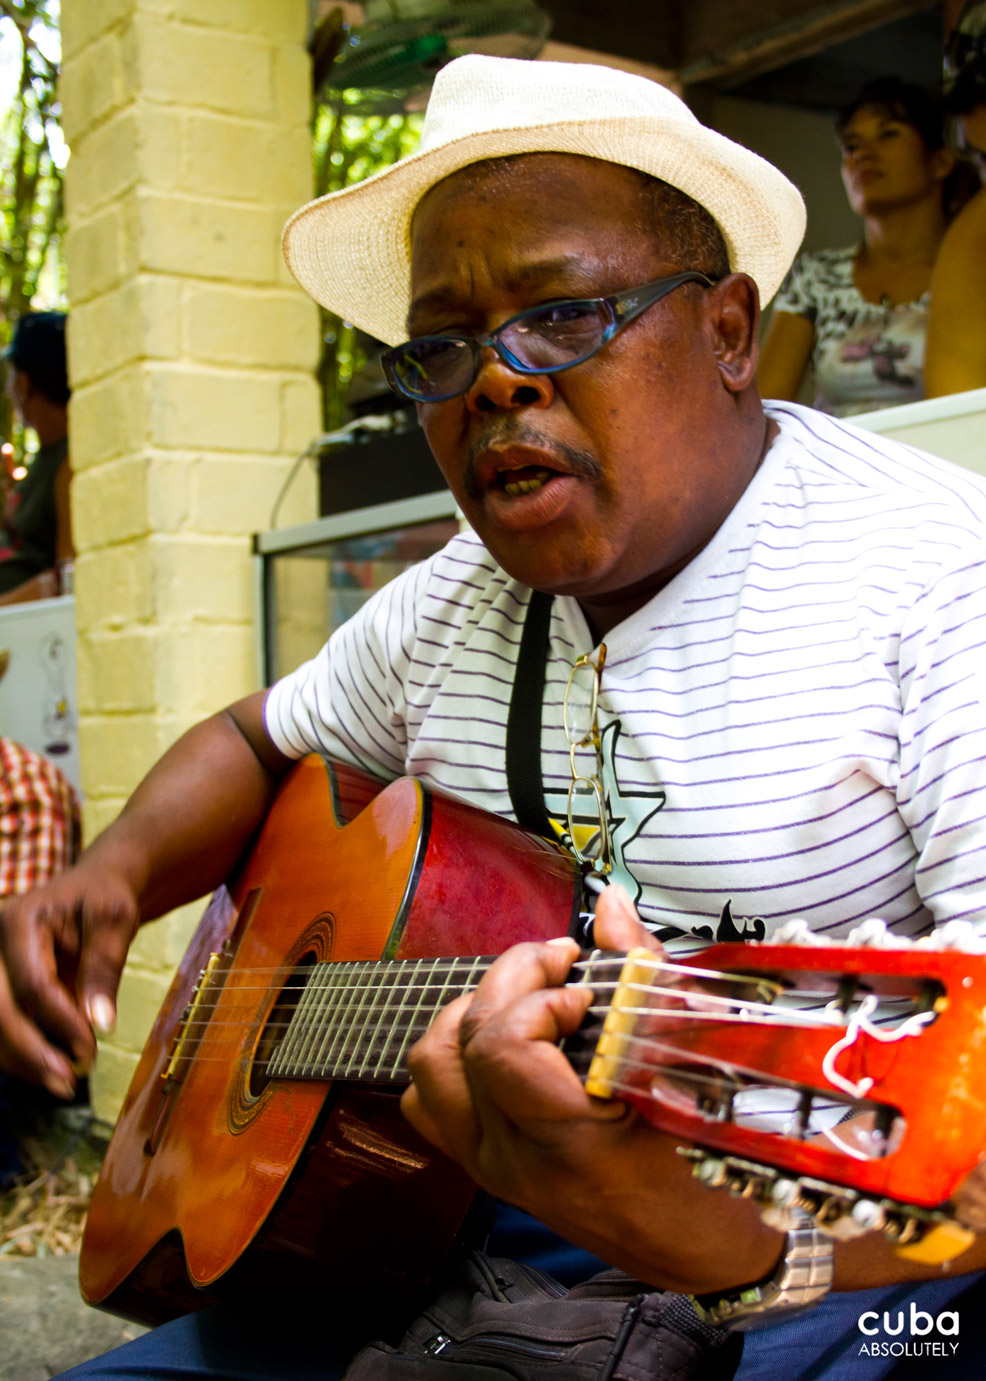 The Cucalambeana is a collection of different events that includes the recital and singing of décimas, a Spanish stanza of ten octosyllabic lines created in Spain between the 16th and 17th centuries, and which in America was adopted by popular sectors of the population, especially by country folk. Las Tunas, Cuba